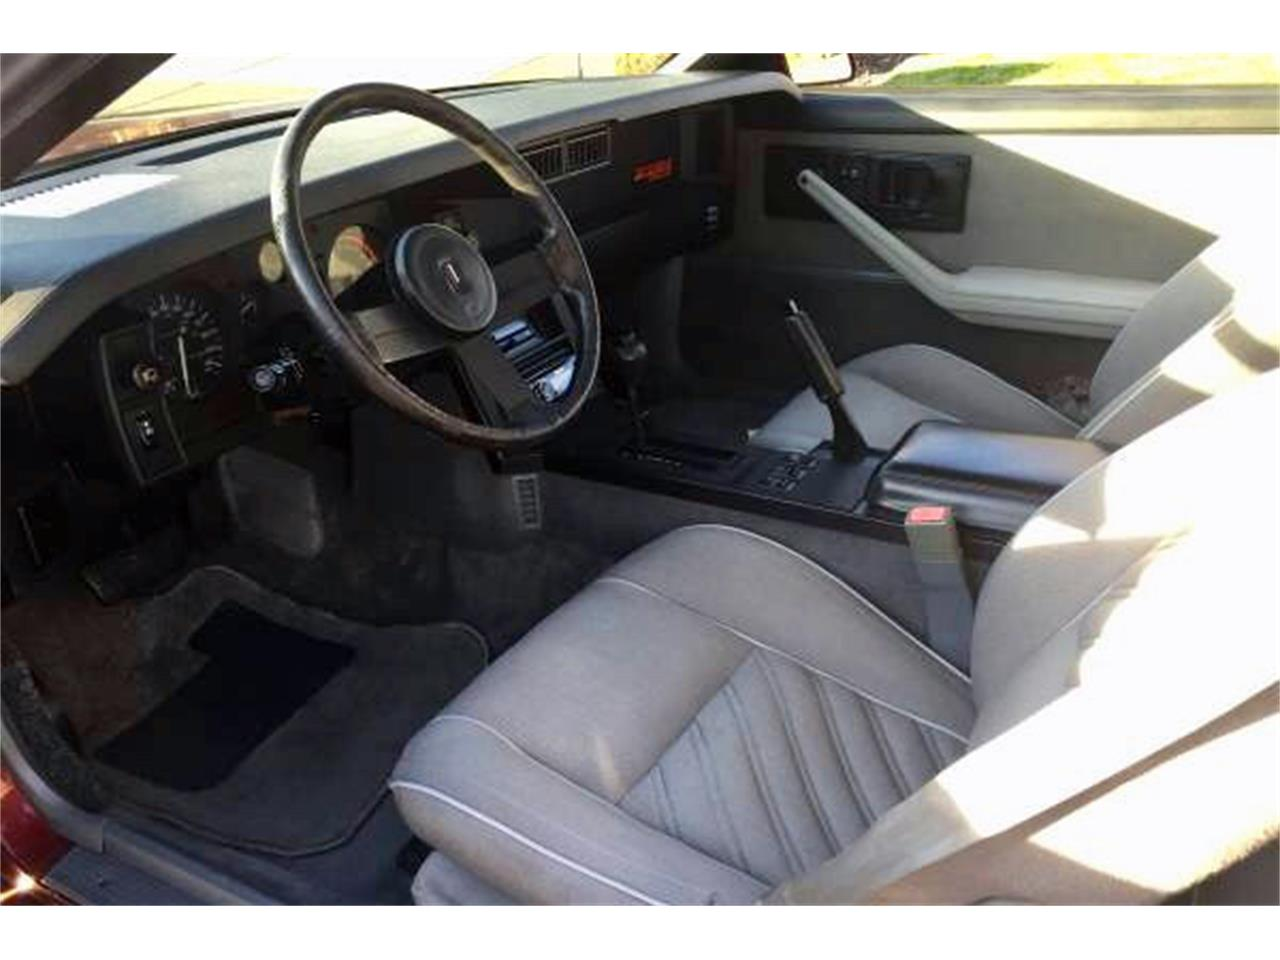 1987 Chevrolet Camaro IROC-Z (CC-1305099) for sale in Scottsdale, Arizona